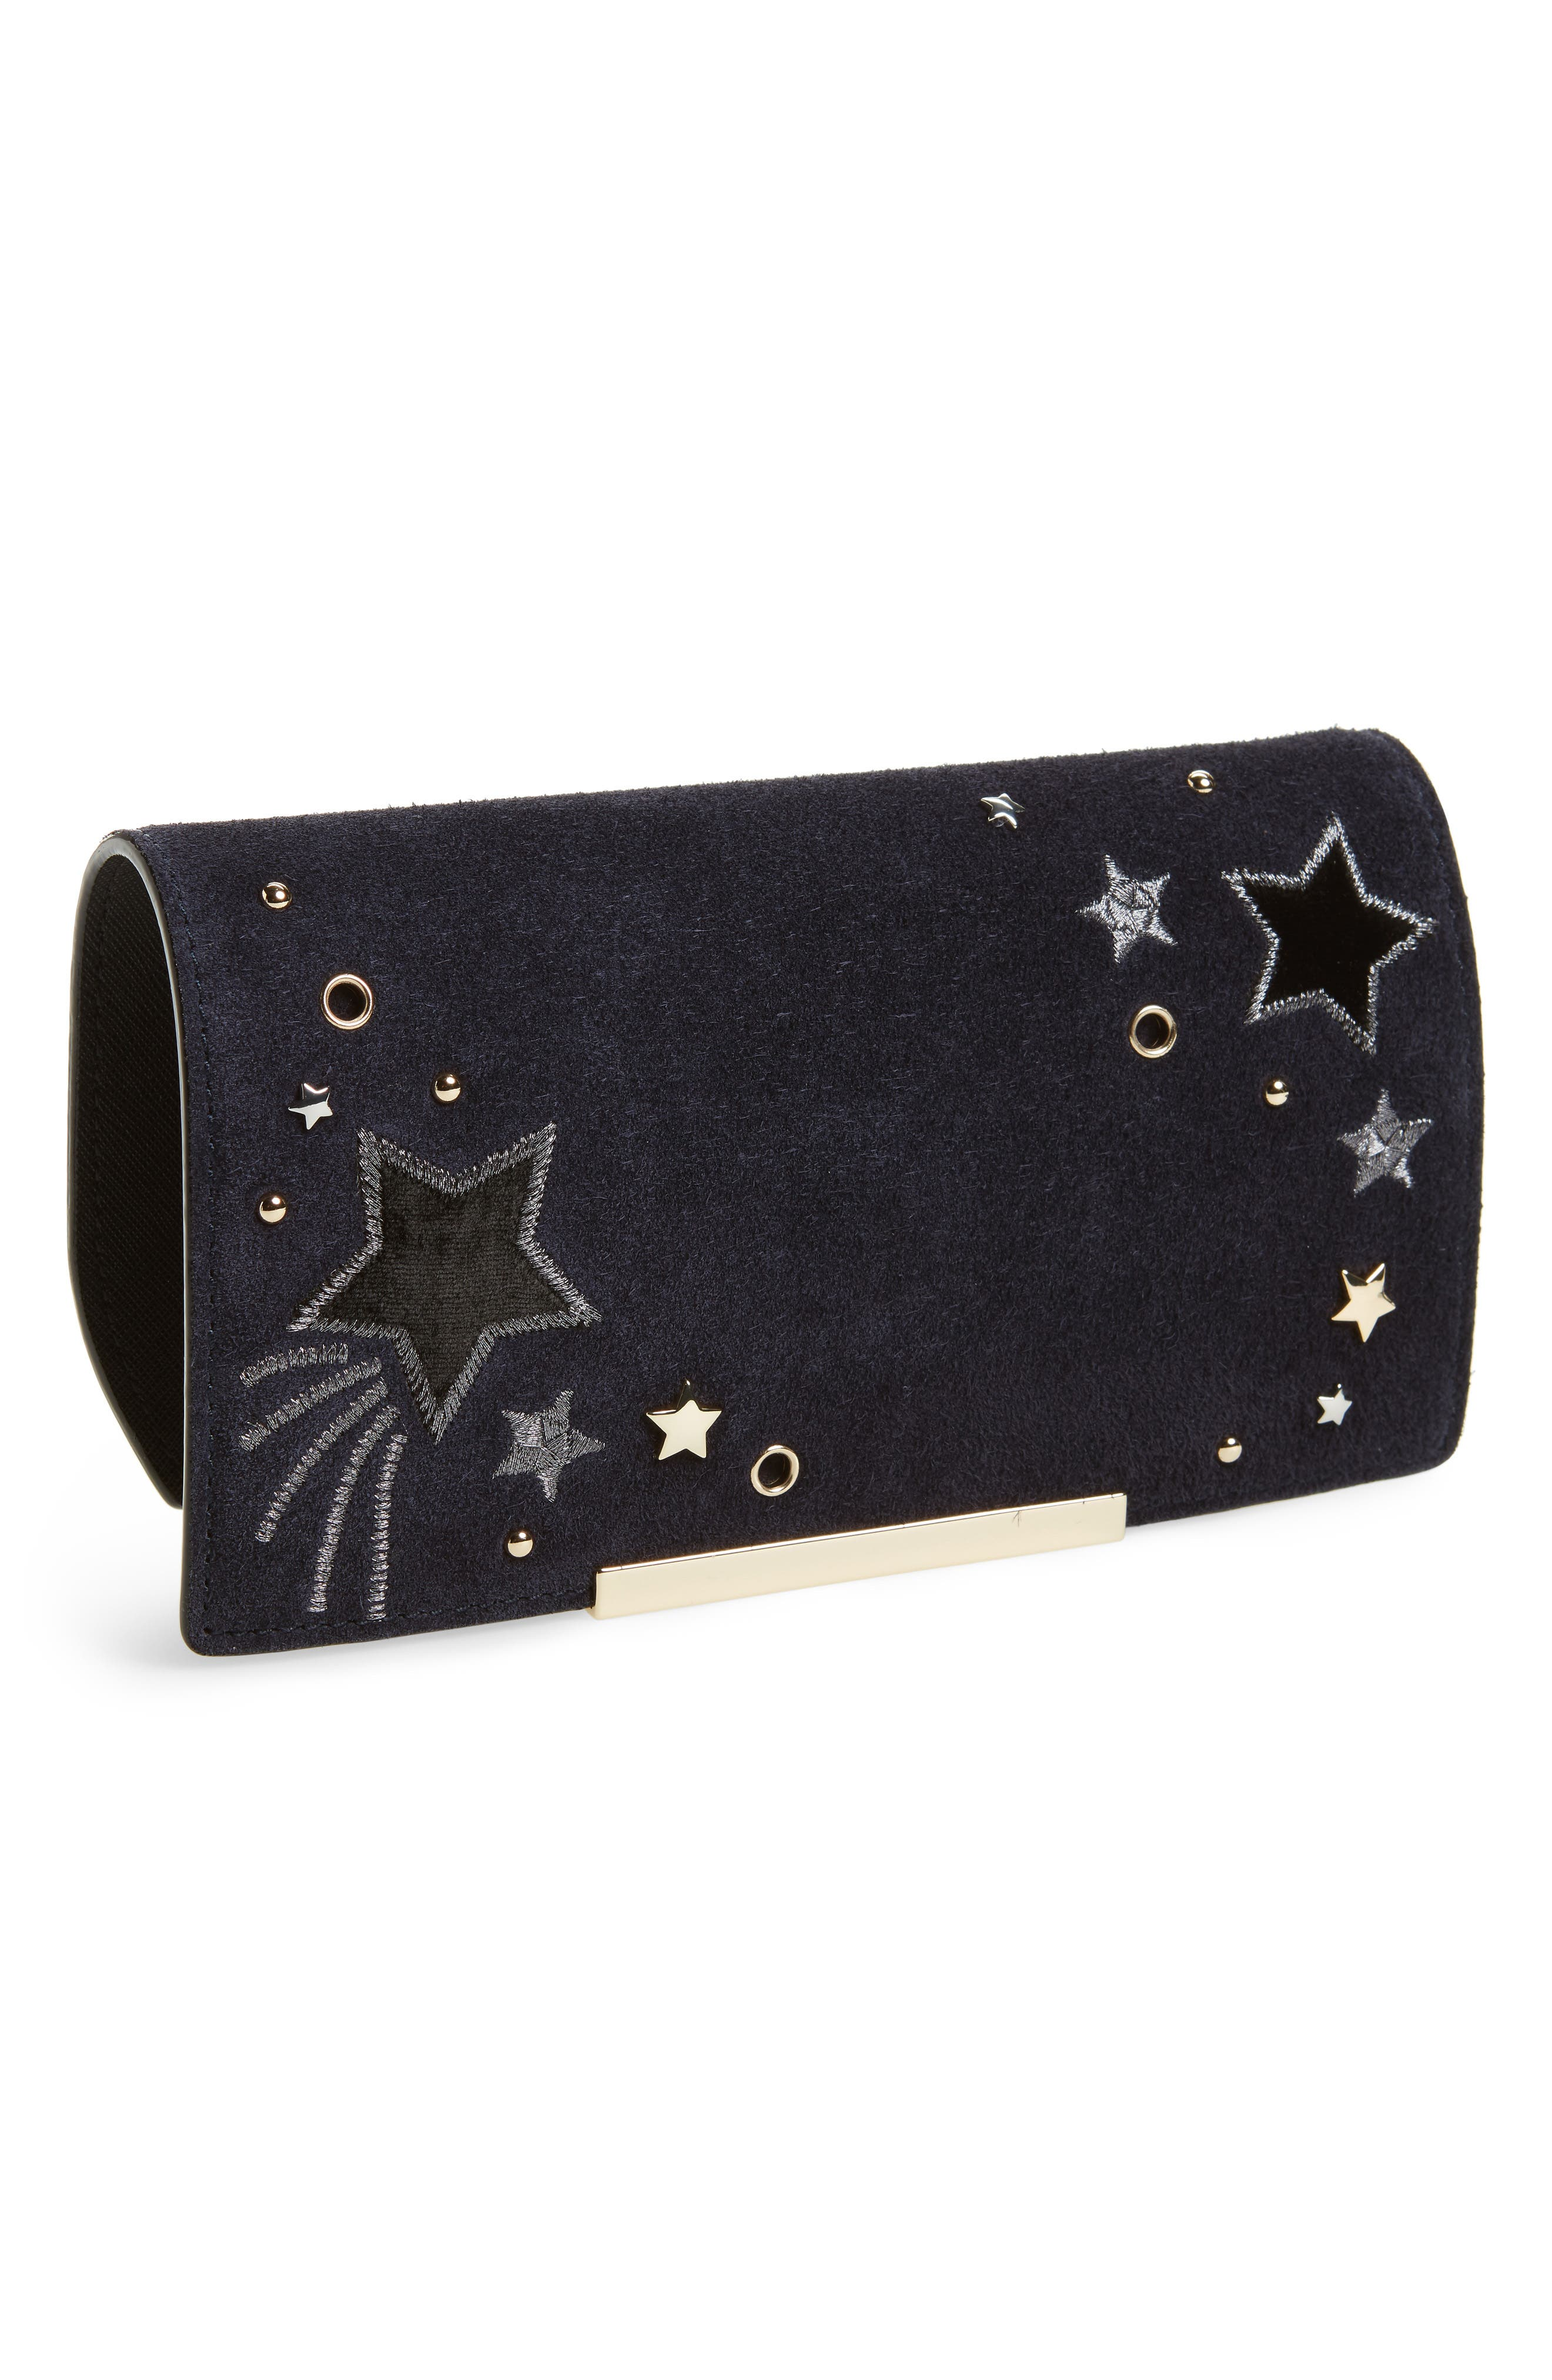 kate spade new york make it mine star embellished snap-on accent flap